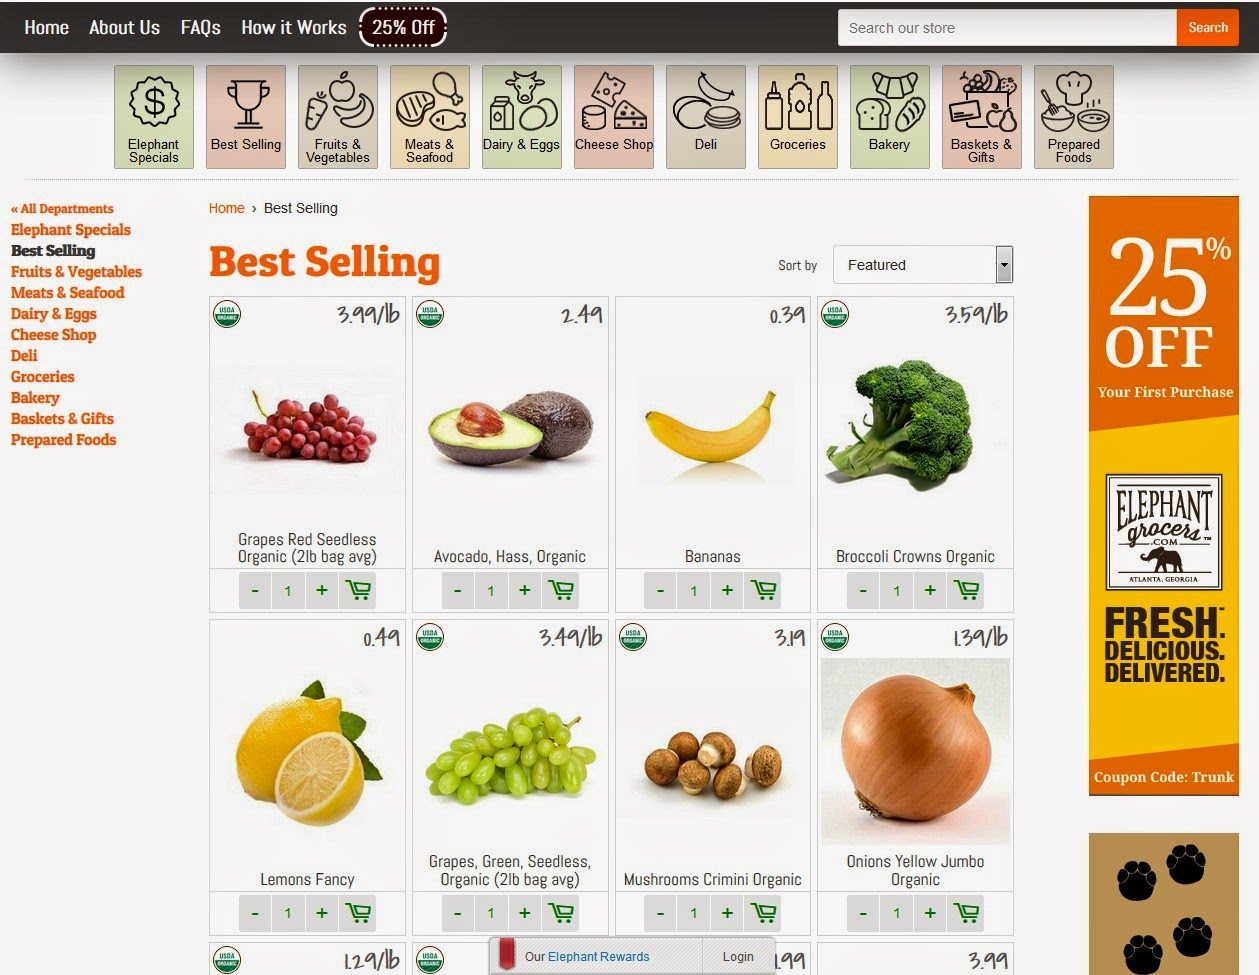 Grocery Delivery Service in Metro #Atlanta Area- ElephantGrocers.com Review via www.productreviewmom.com